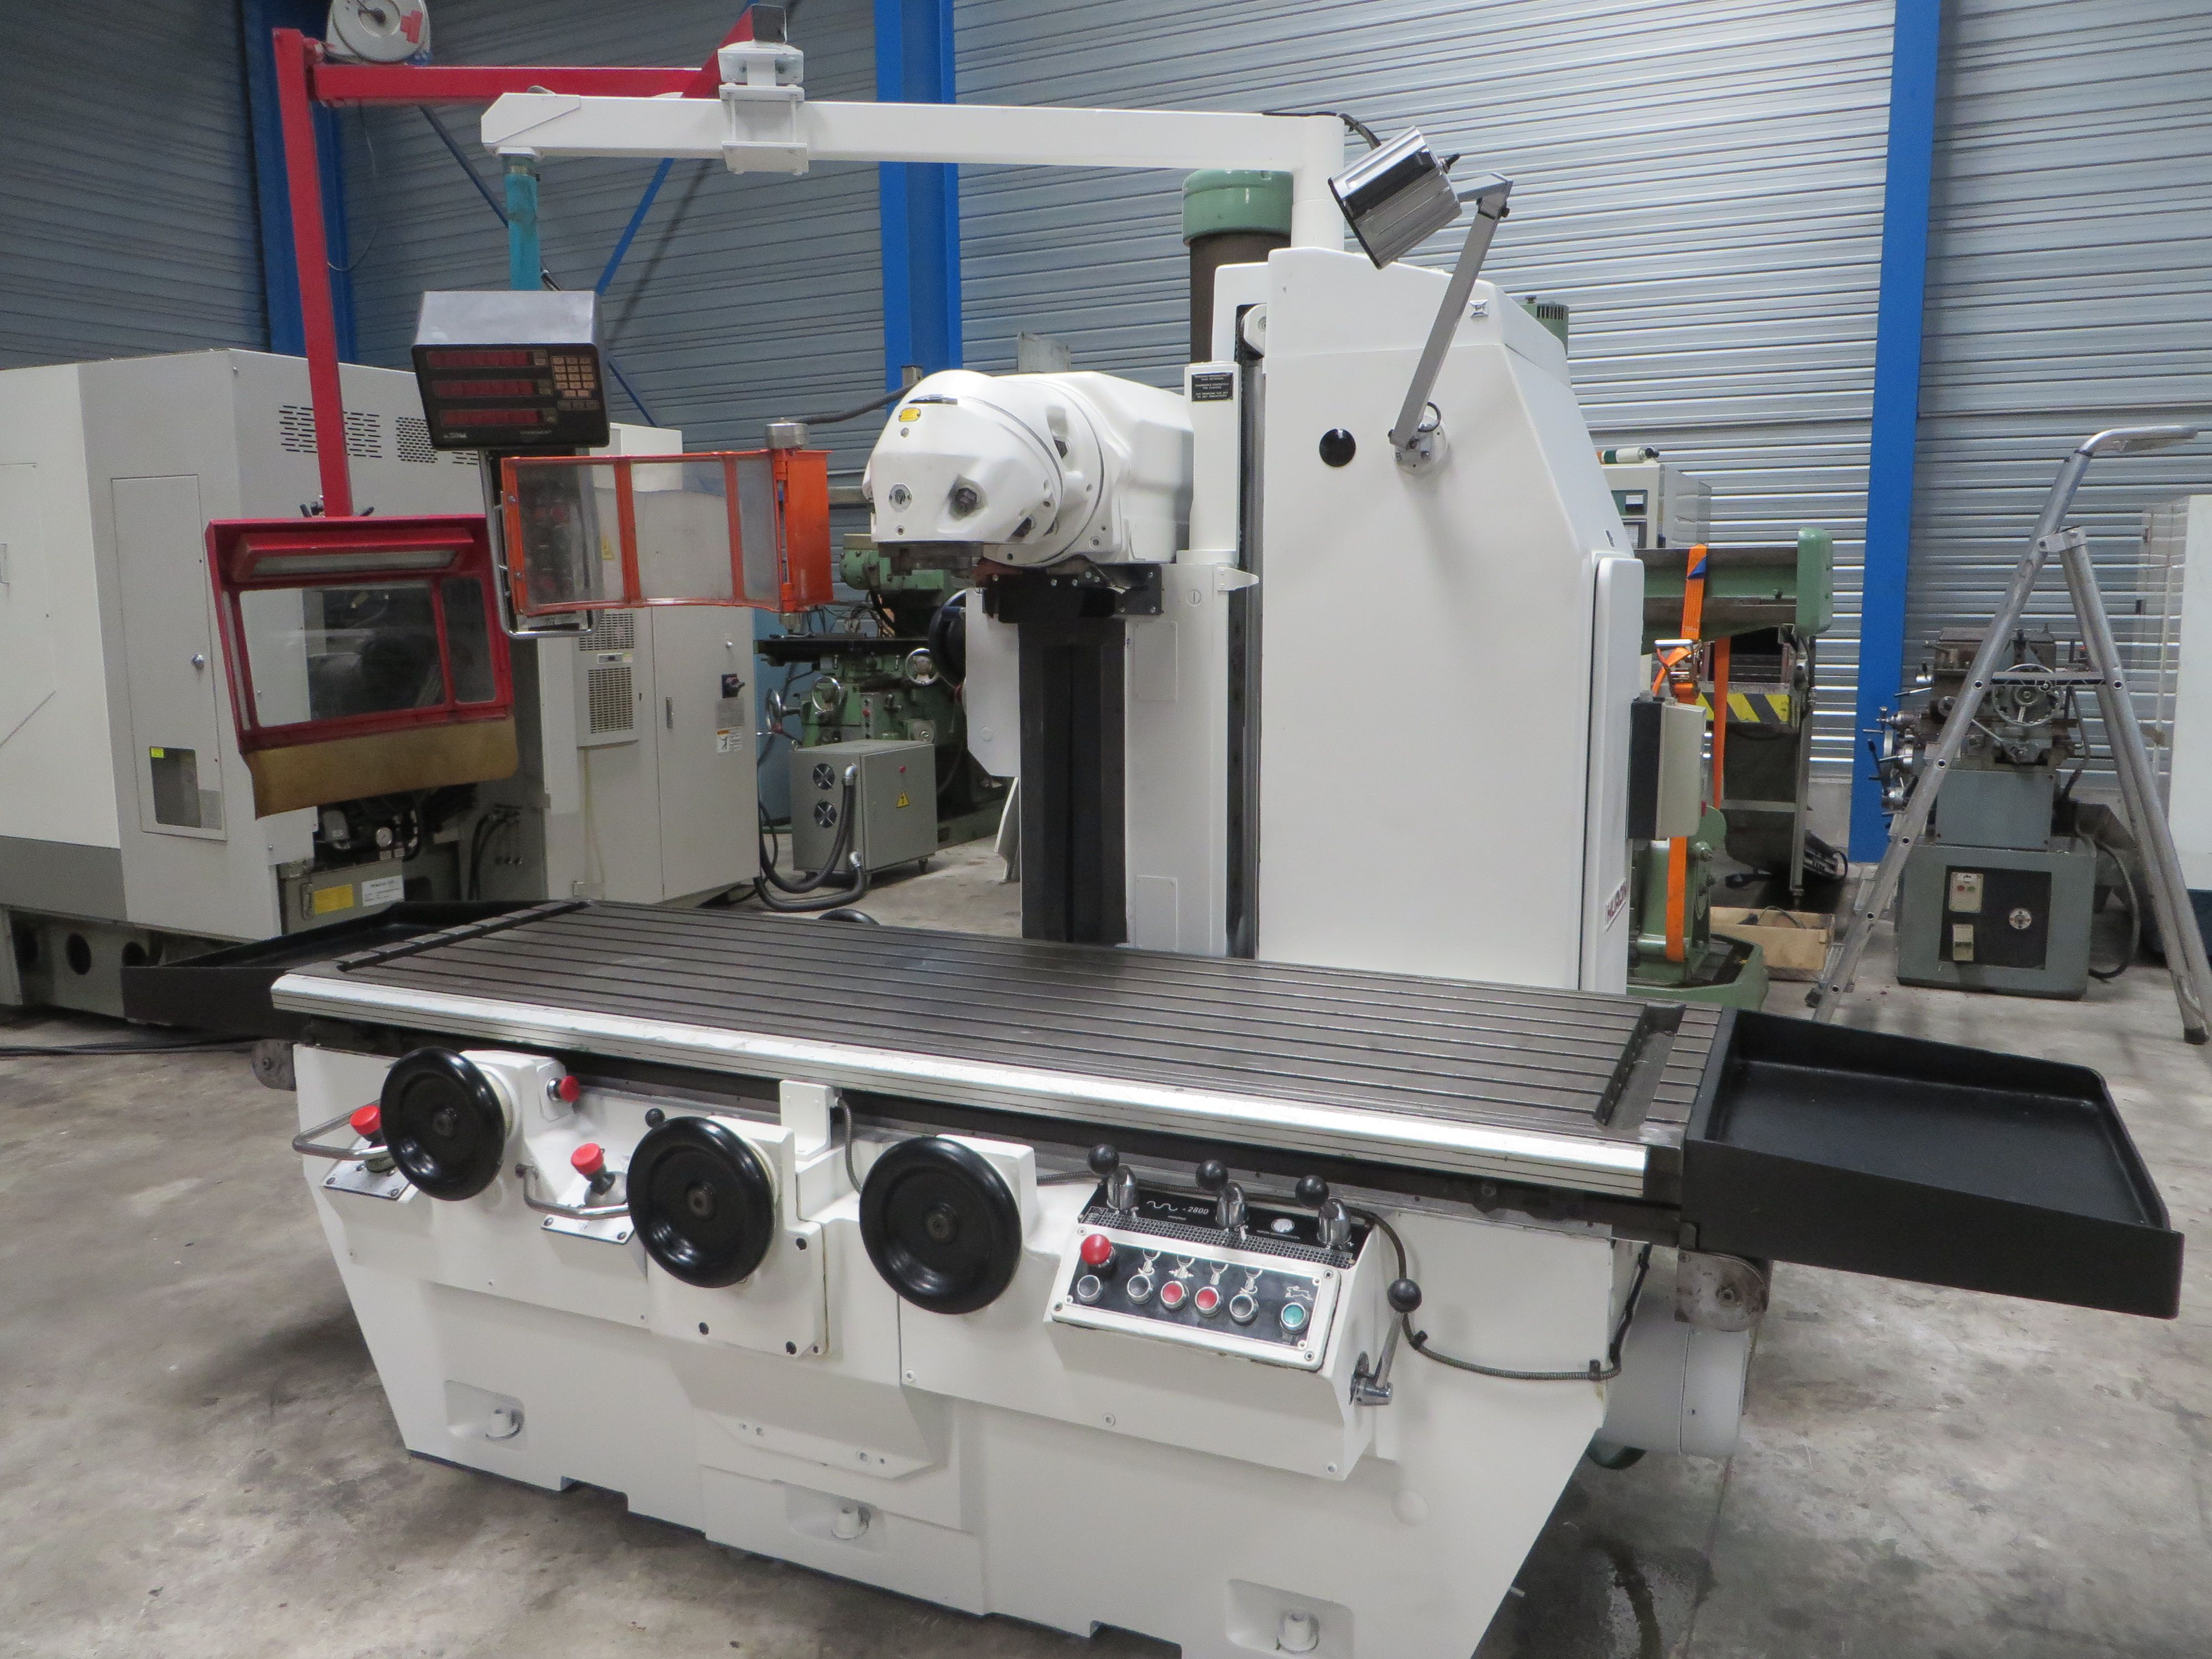 All Types Of New Milling Machines And Used Milling Machines For Sale >> Bed Type Milling Machine Huron Pu 771